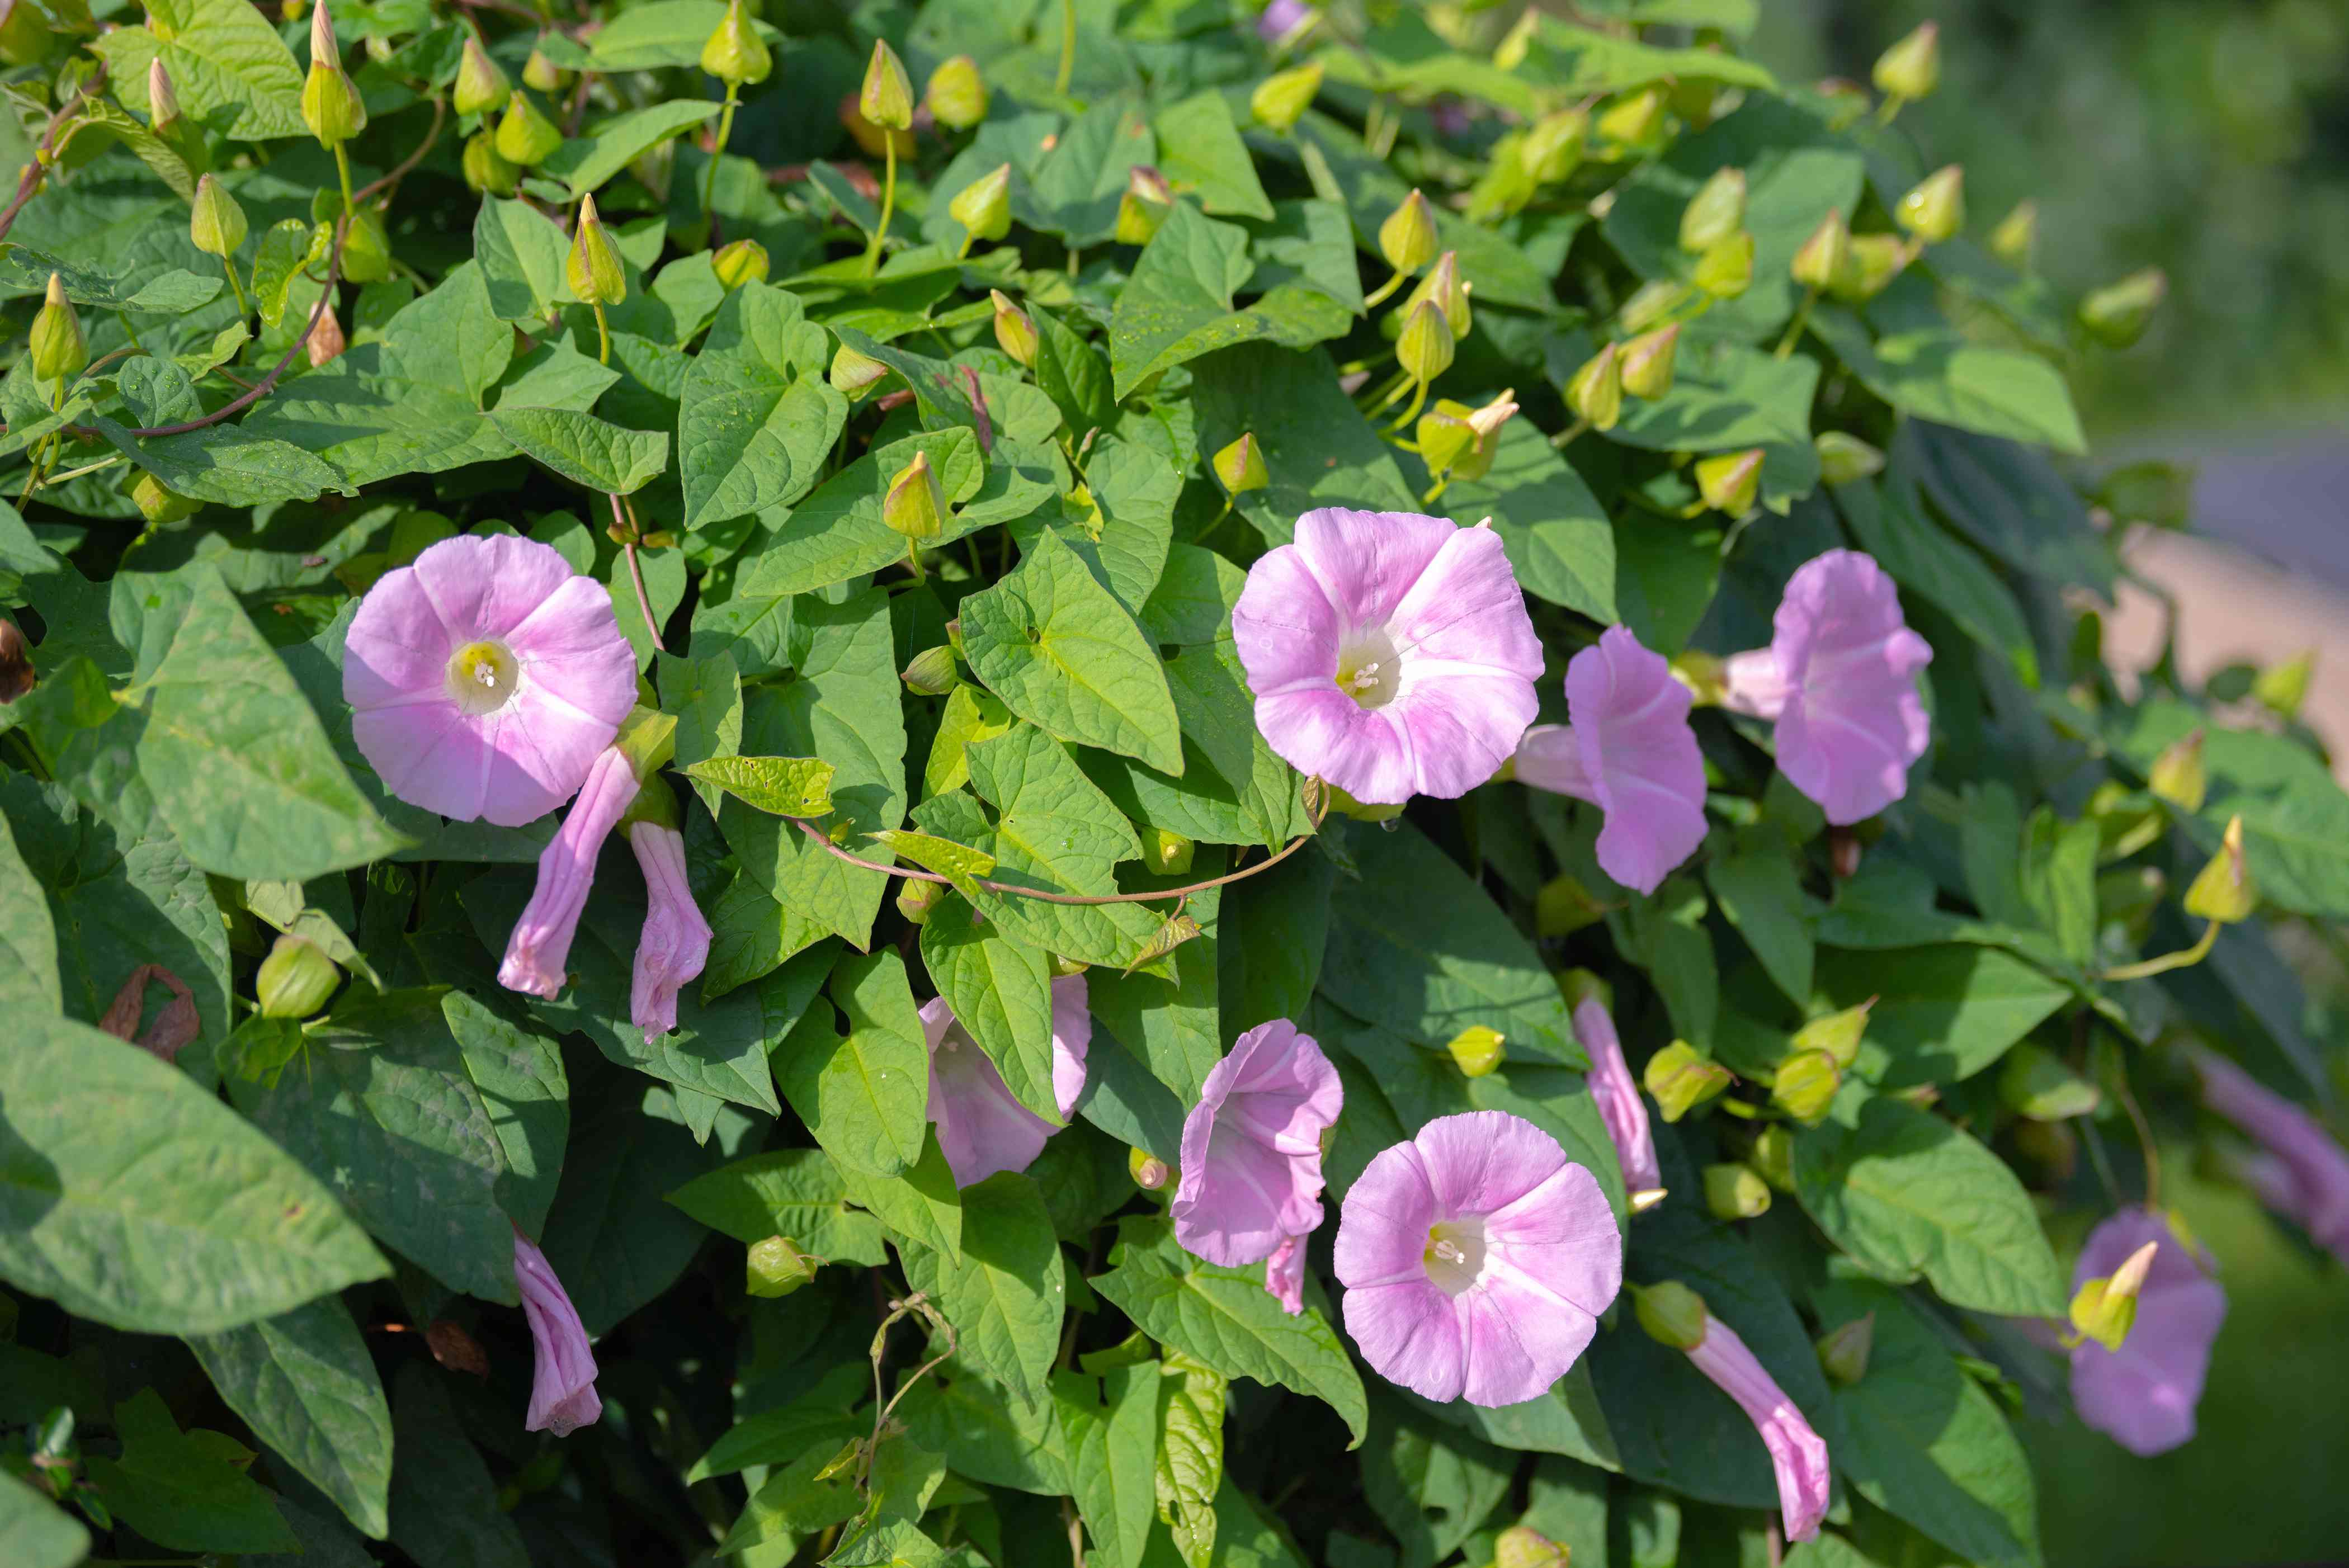 Hedge bindweed plant with small pink flowers surrounded by arrow-shaped leaves